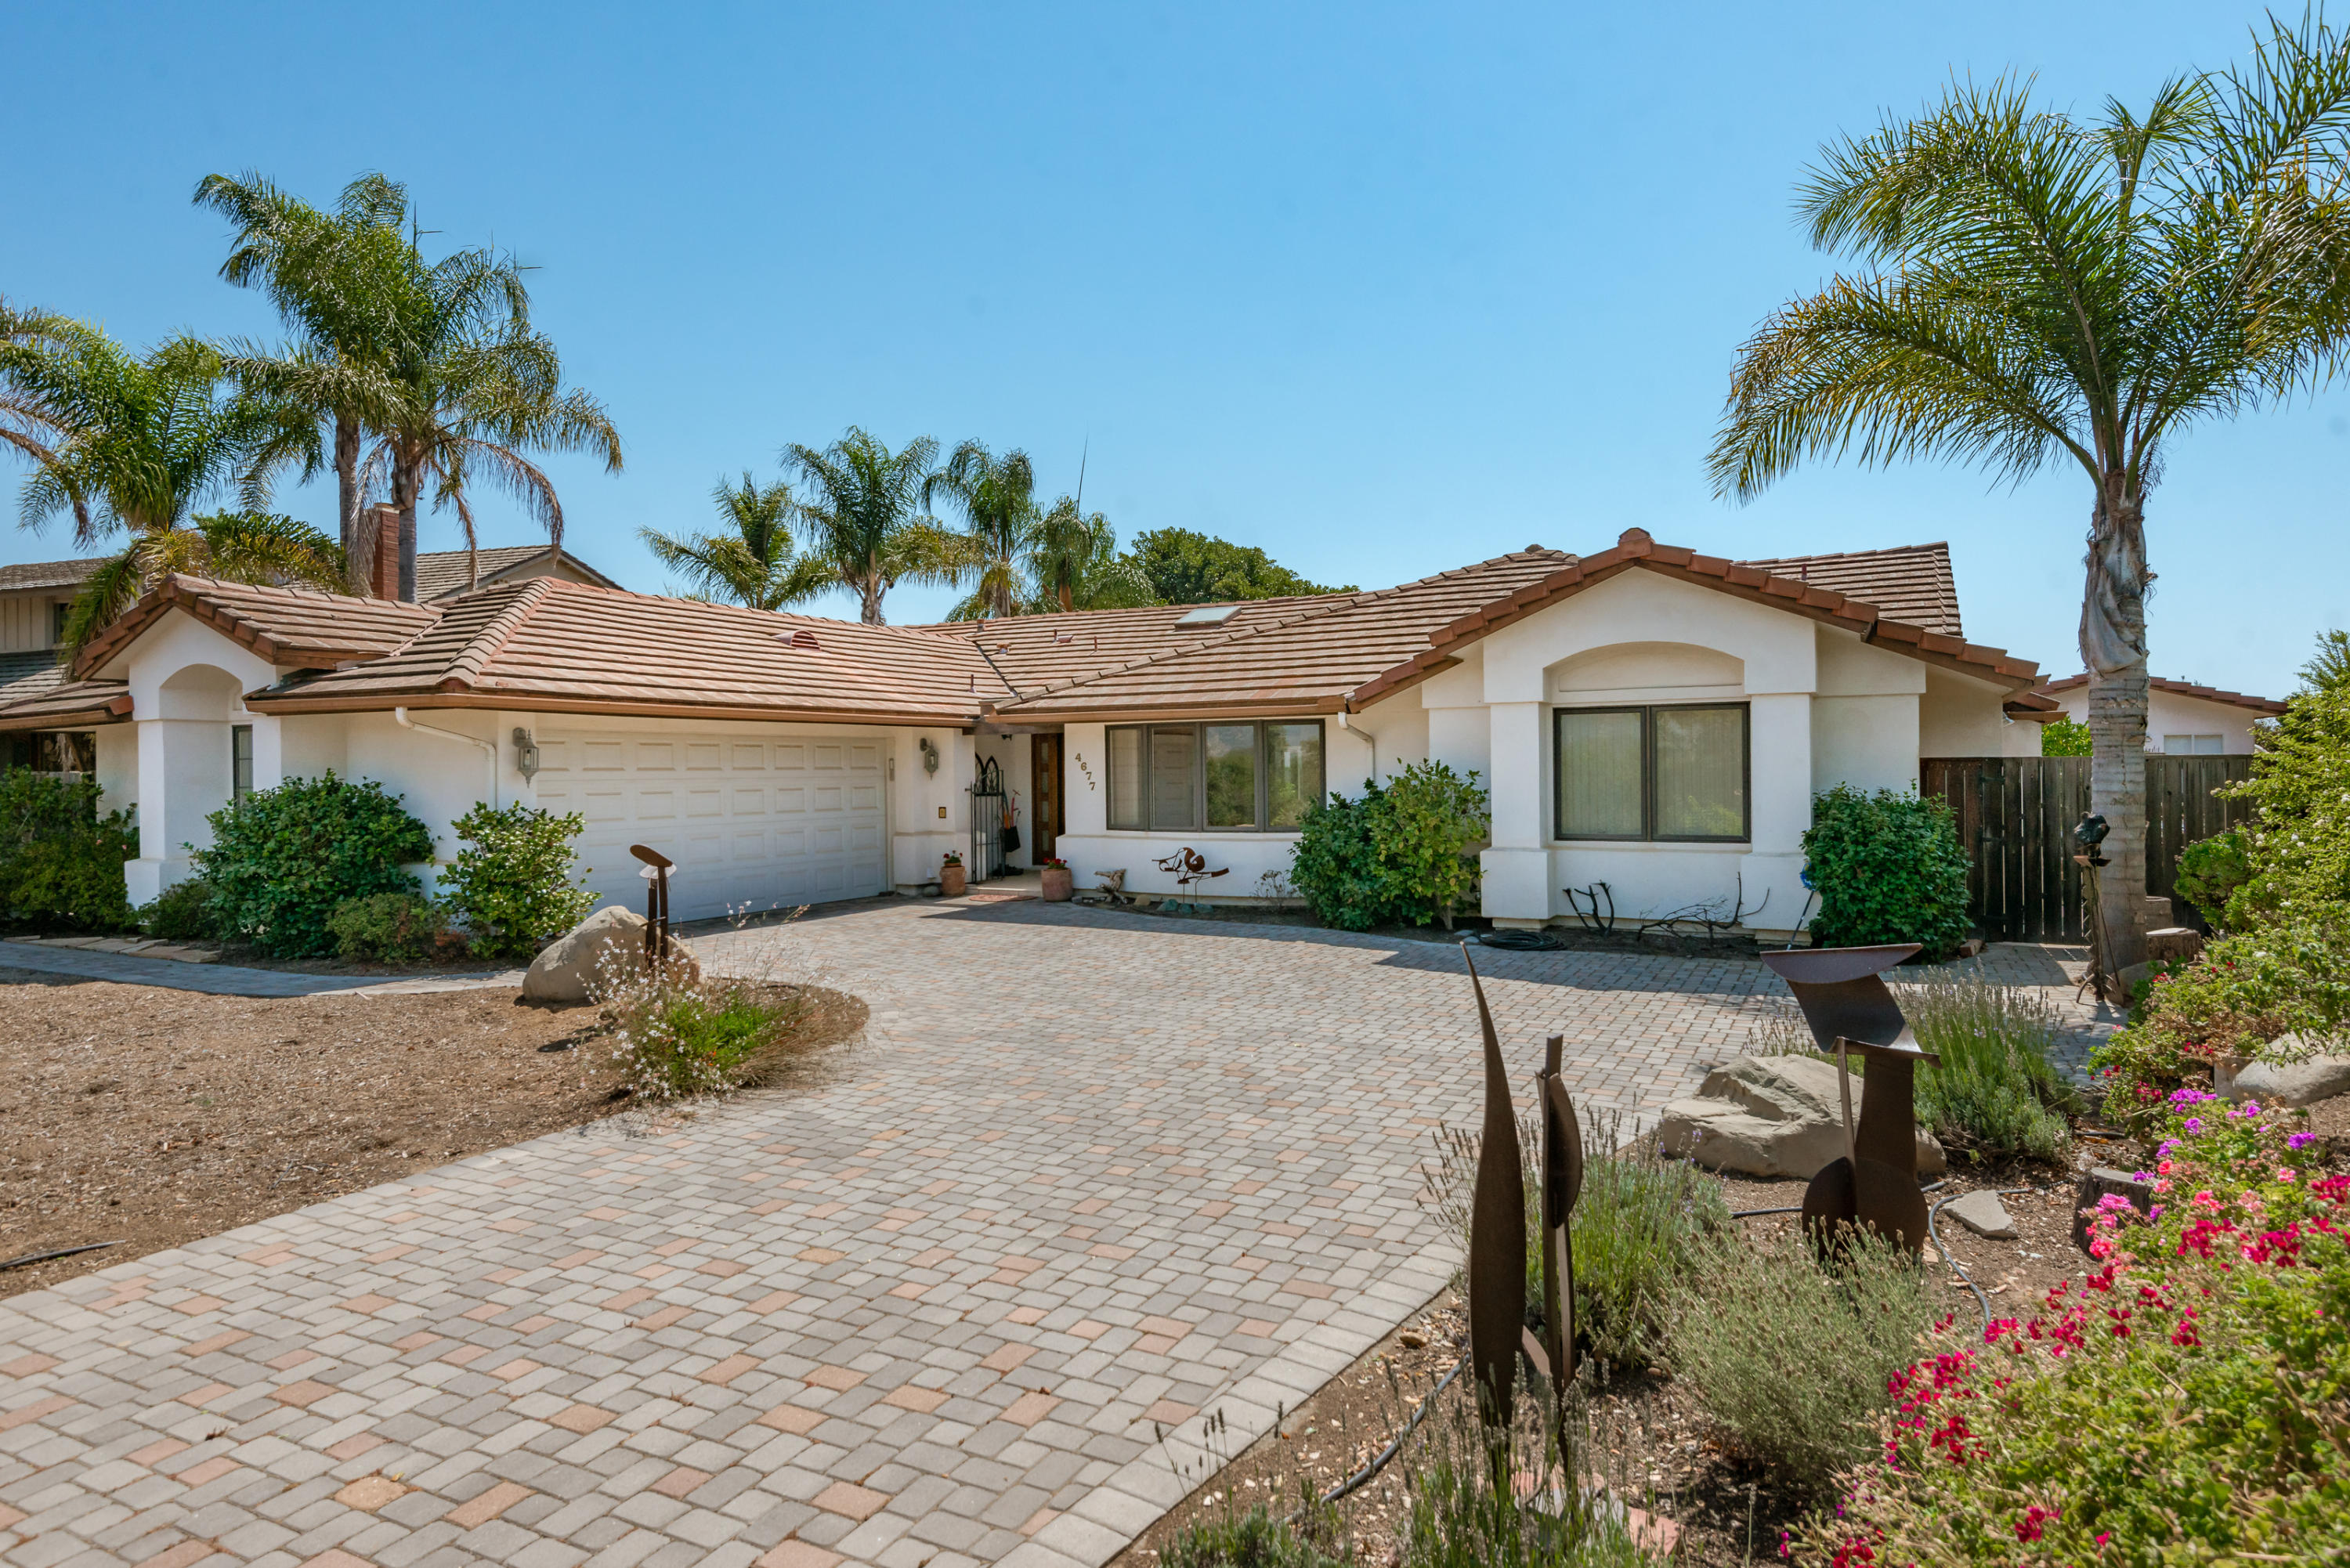 Property photo for 4677 Sierra Madre Rd Santa Barbara, California 93110 - 18-3274